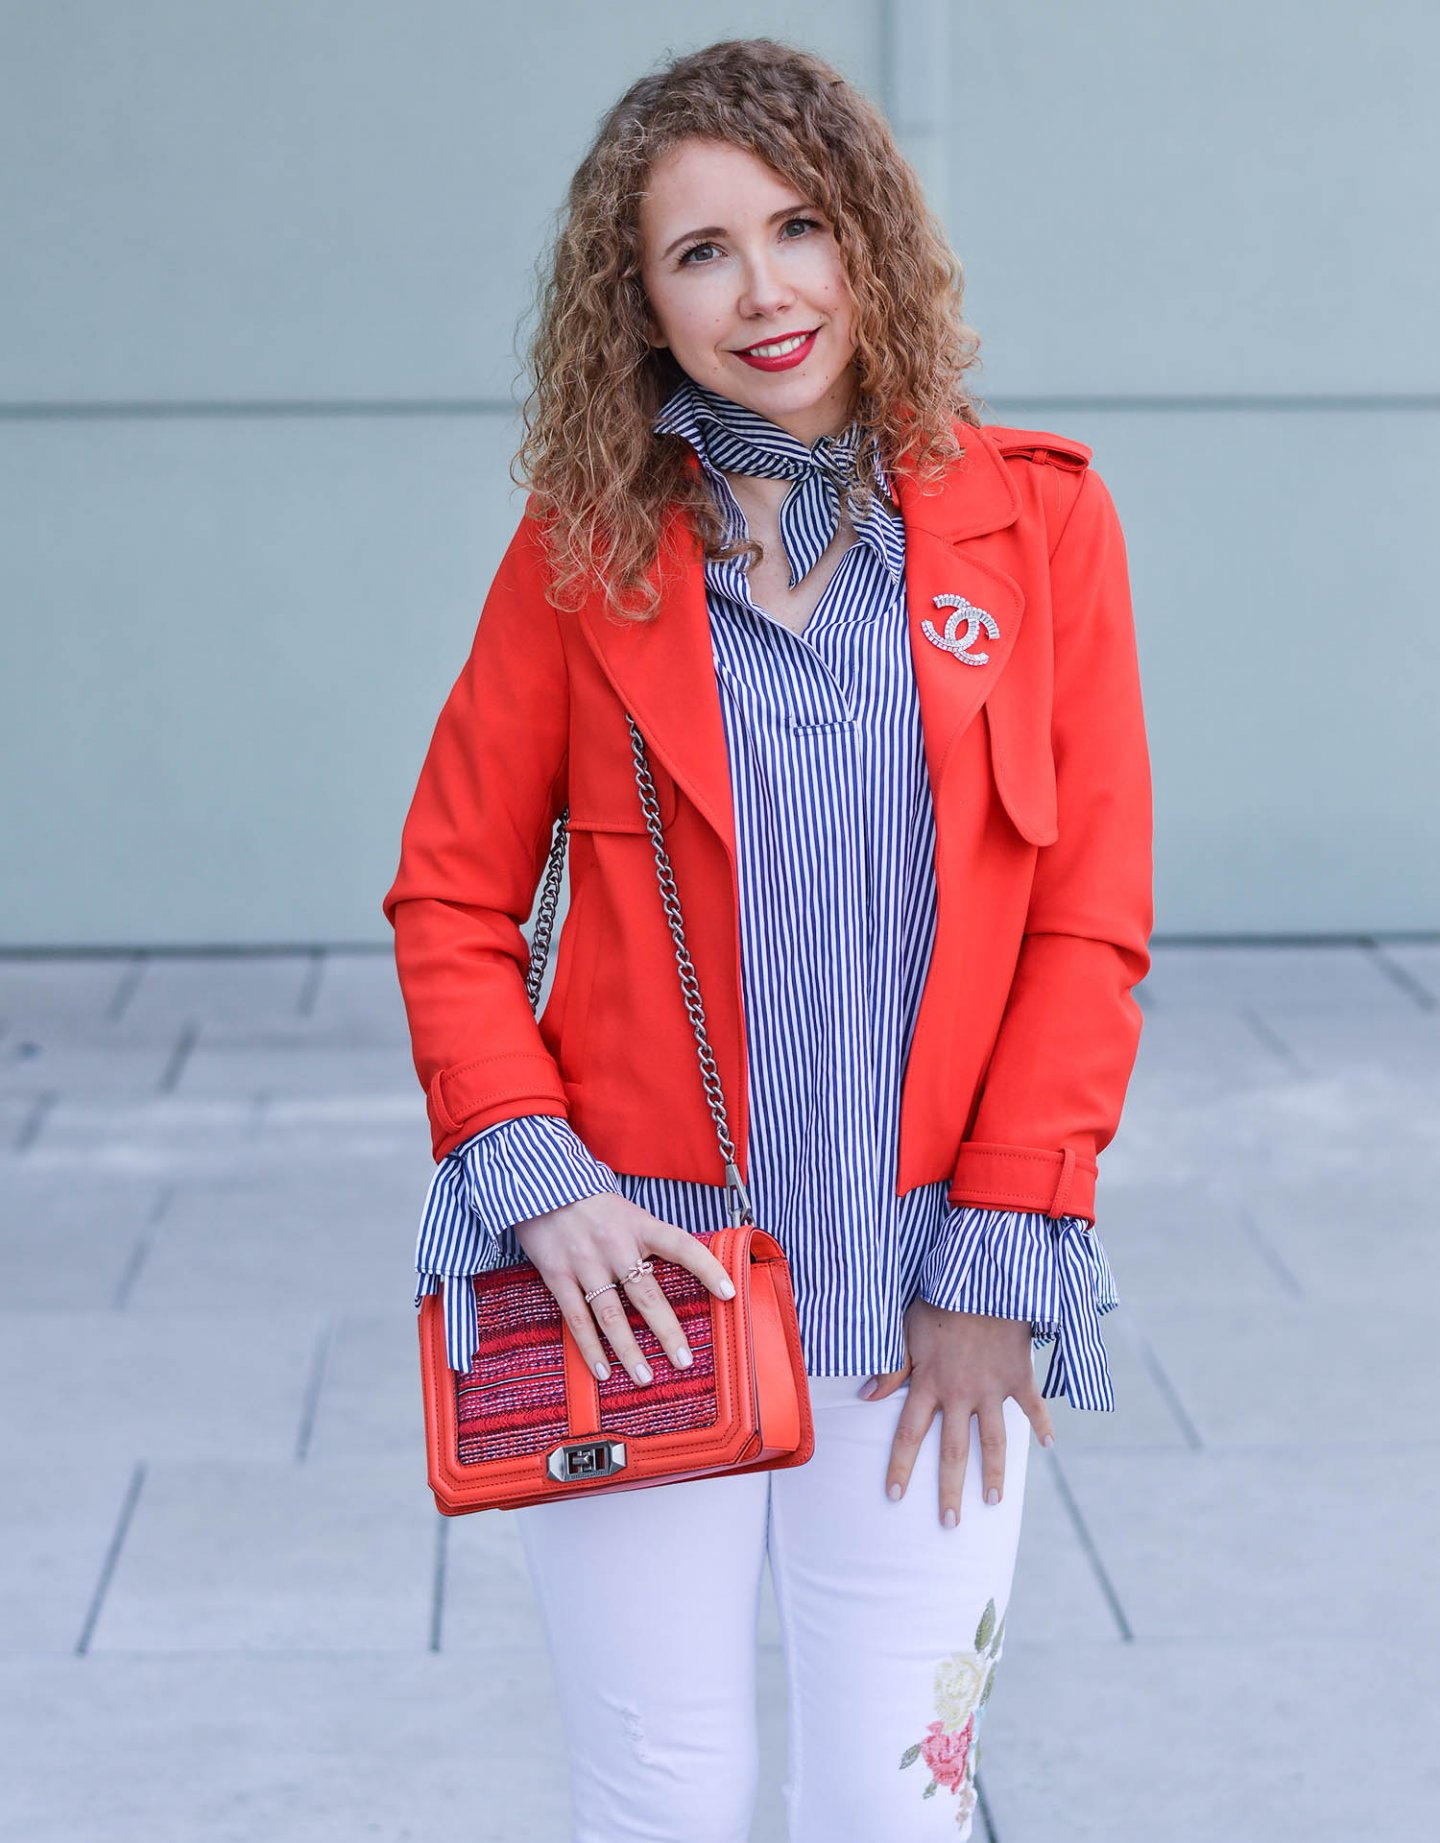 spring-outfit-red-white-blue-kationette